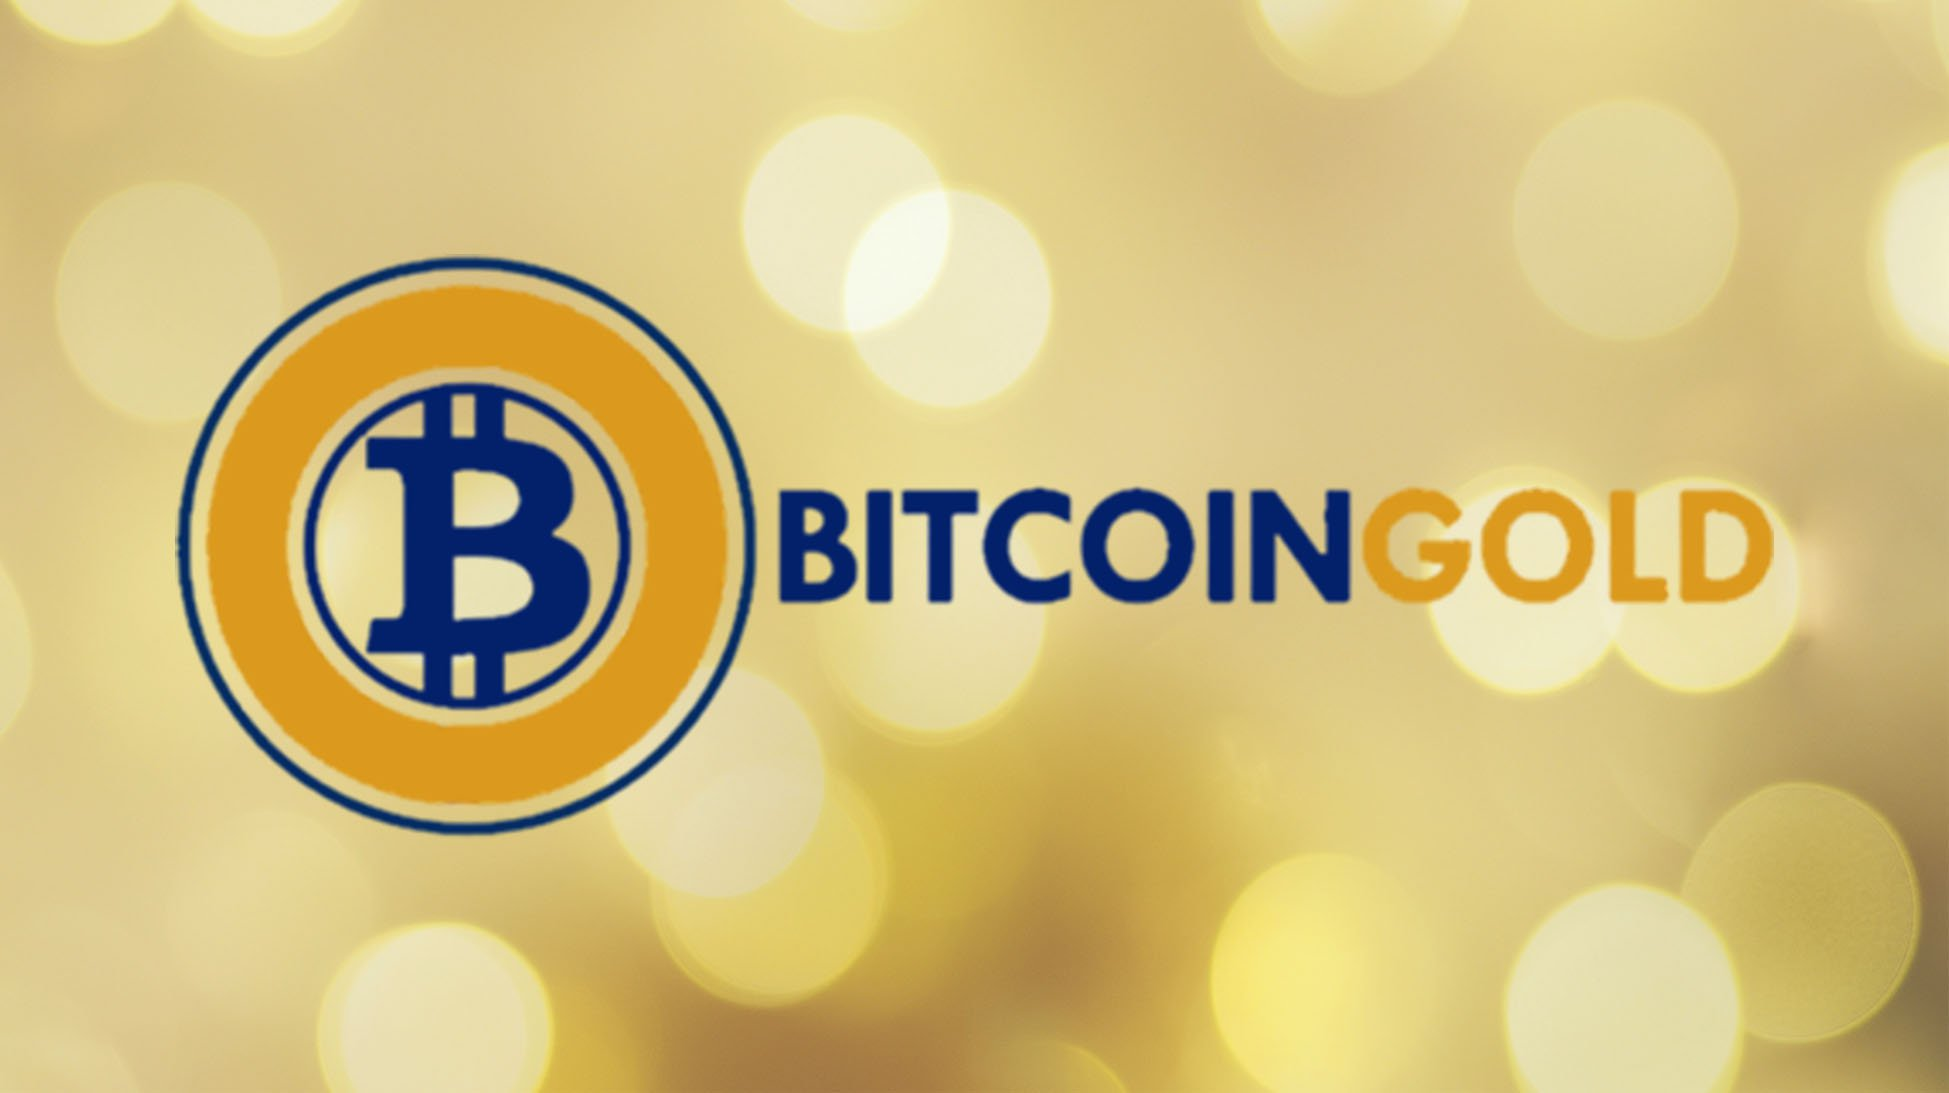 Bitcoin Gold Launches on November 12